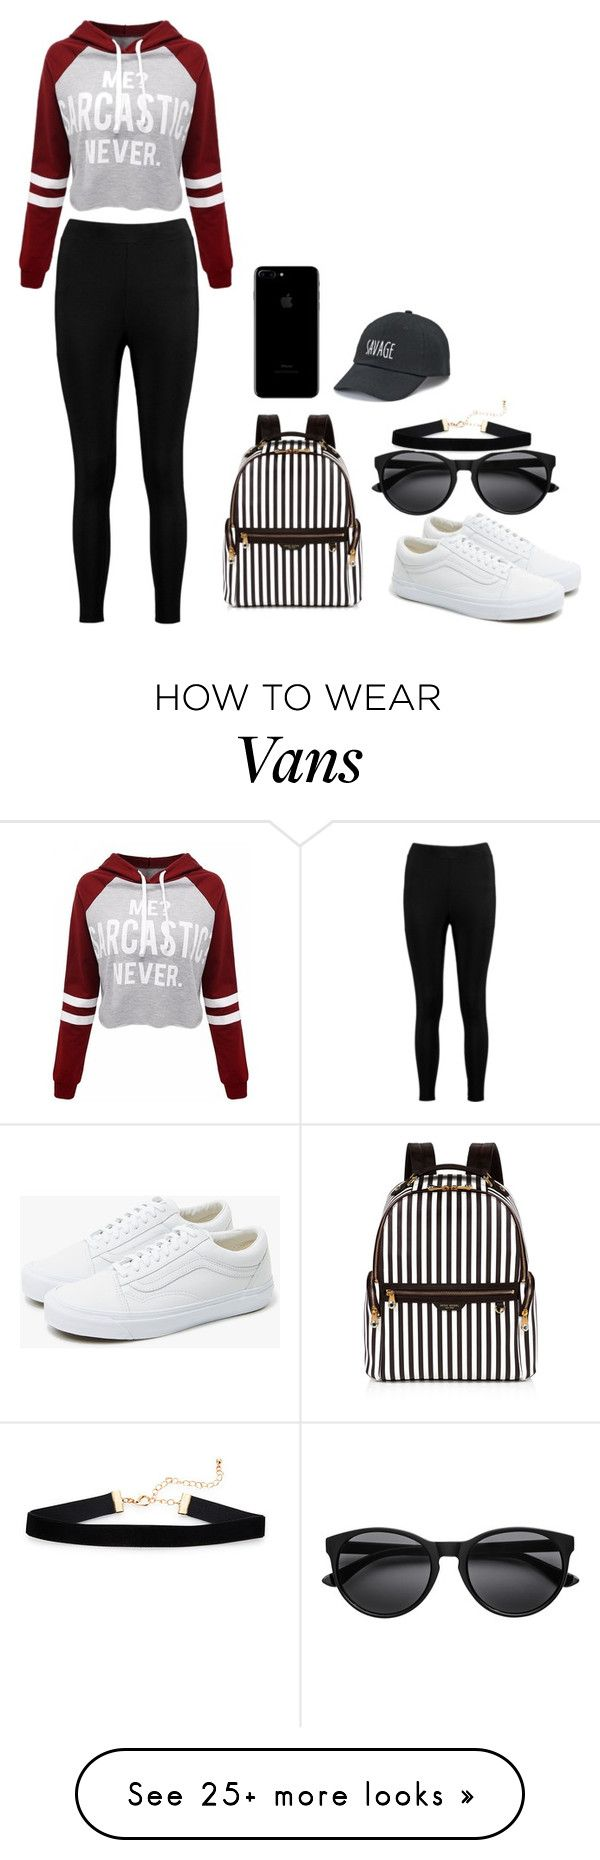 """Untitled #39"" by oliviacollins2023 on Polyvore featuring Boohoo, Vans, Henri Bendel and SO"